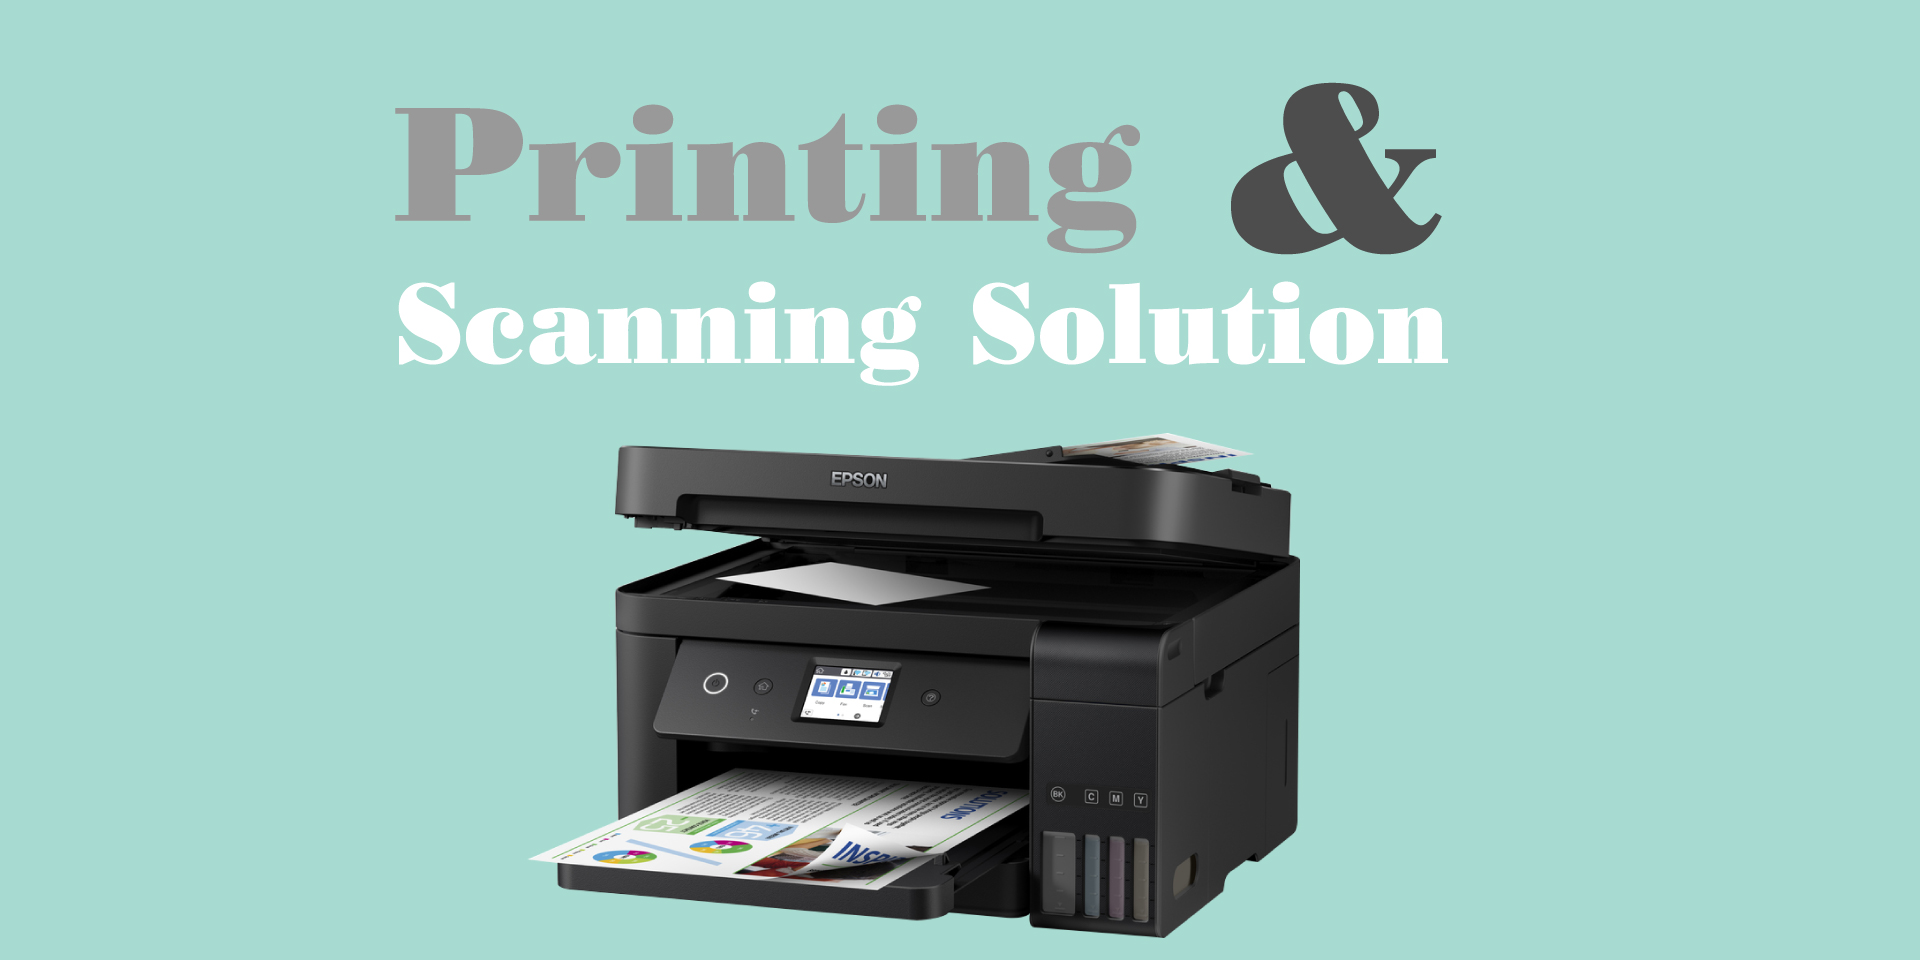 Printing-&-Scanning-Solution